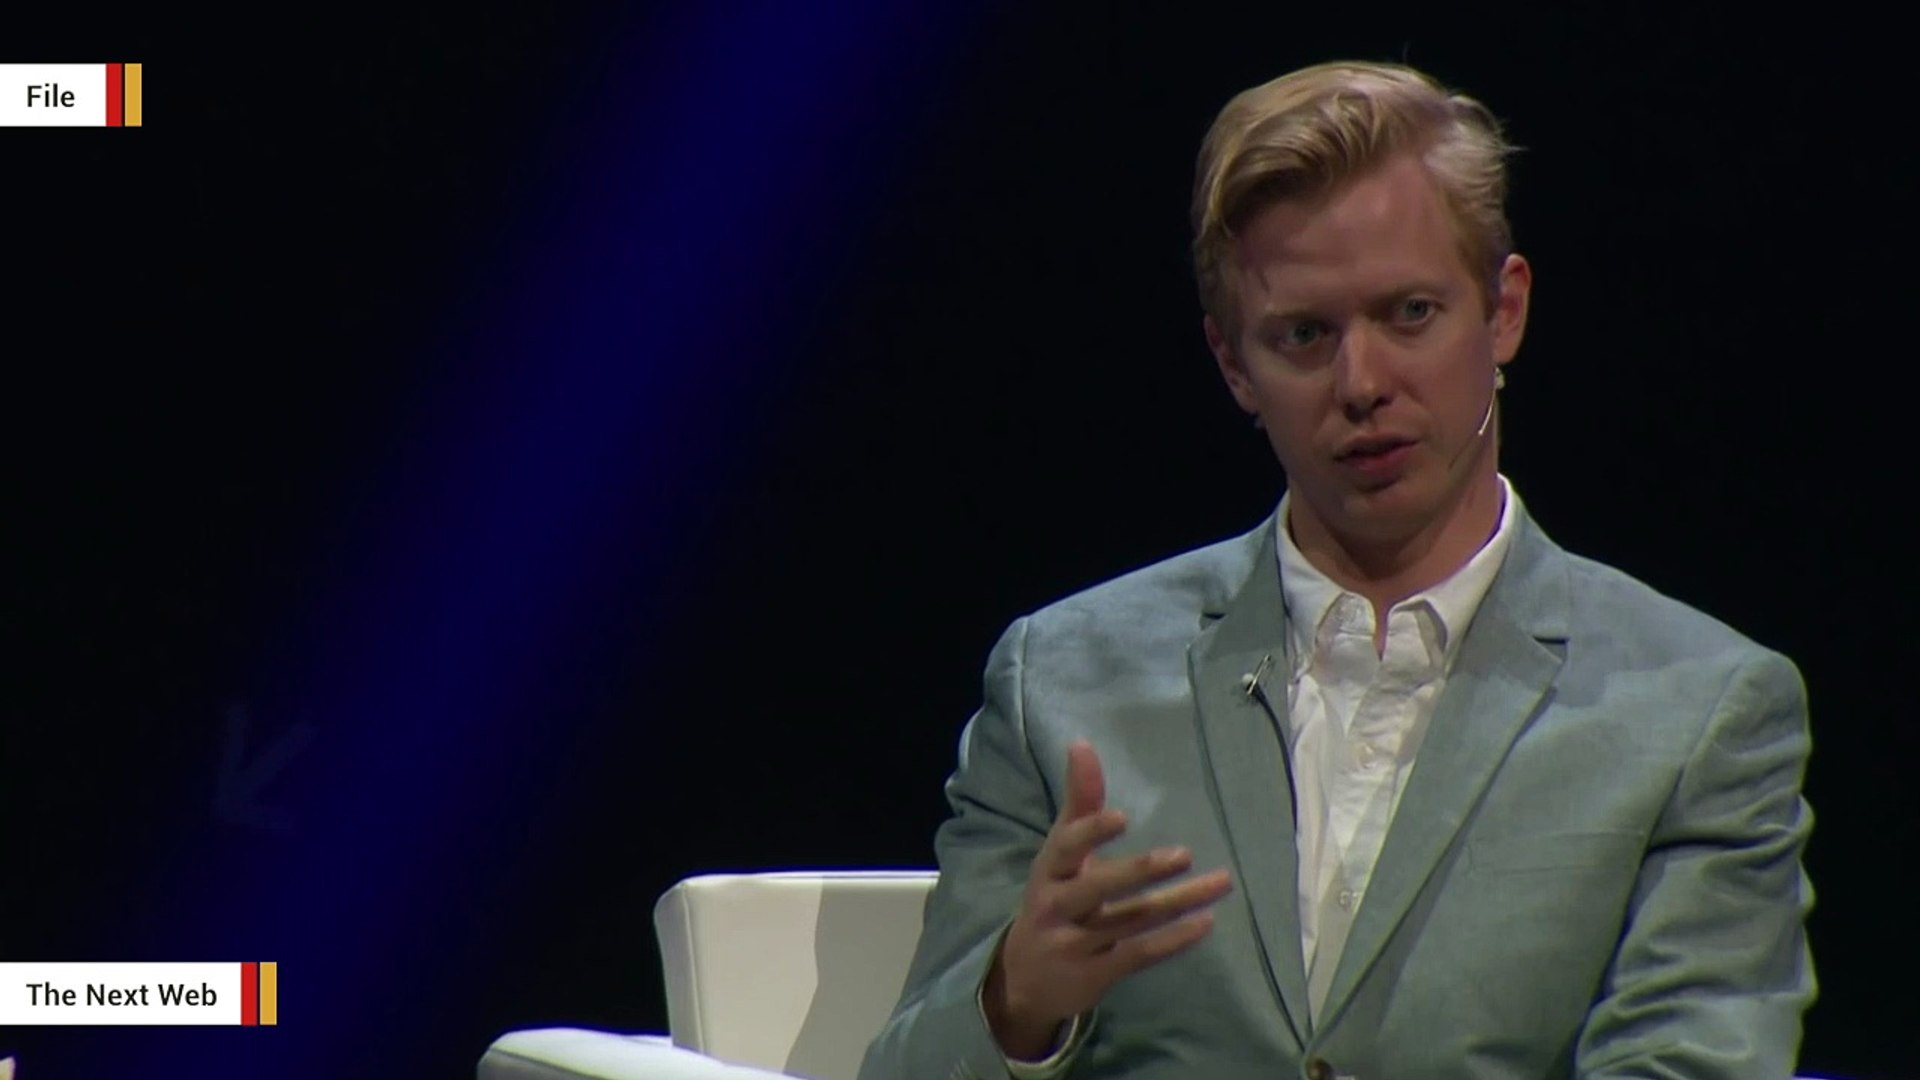 Reddit CEO Admits To Secretly Editing Comments From Trump Supporters